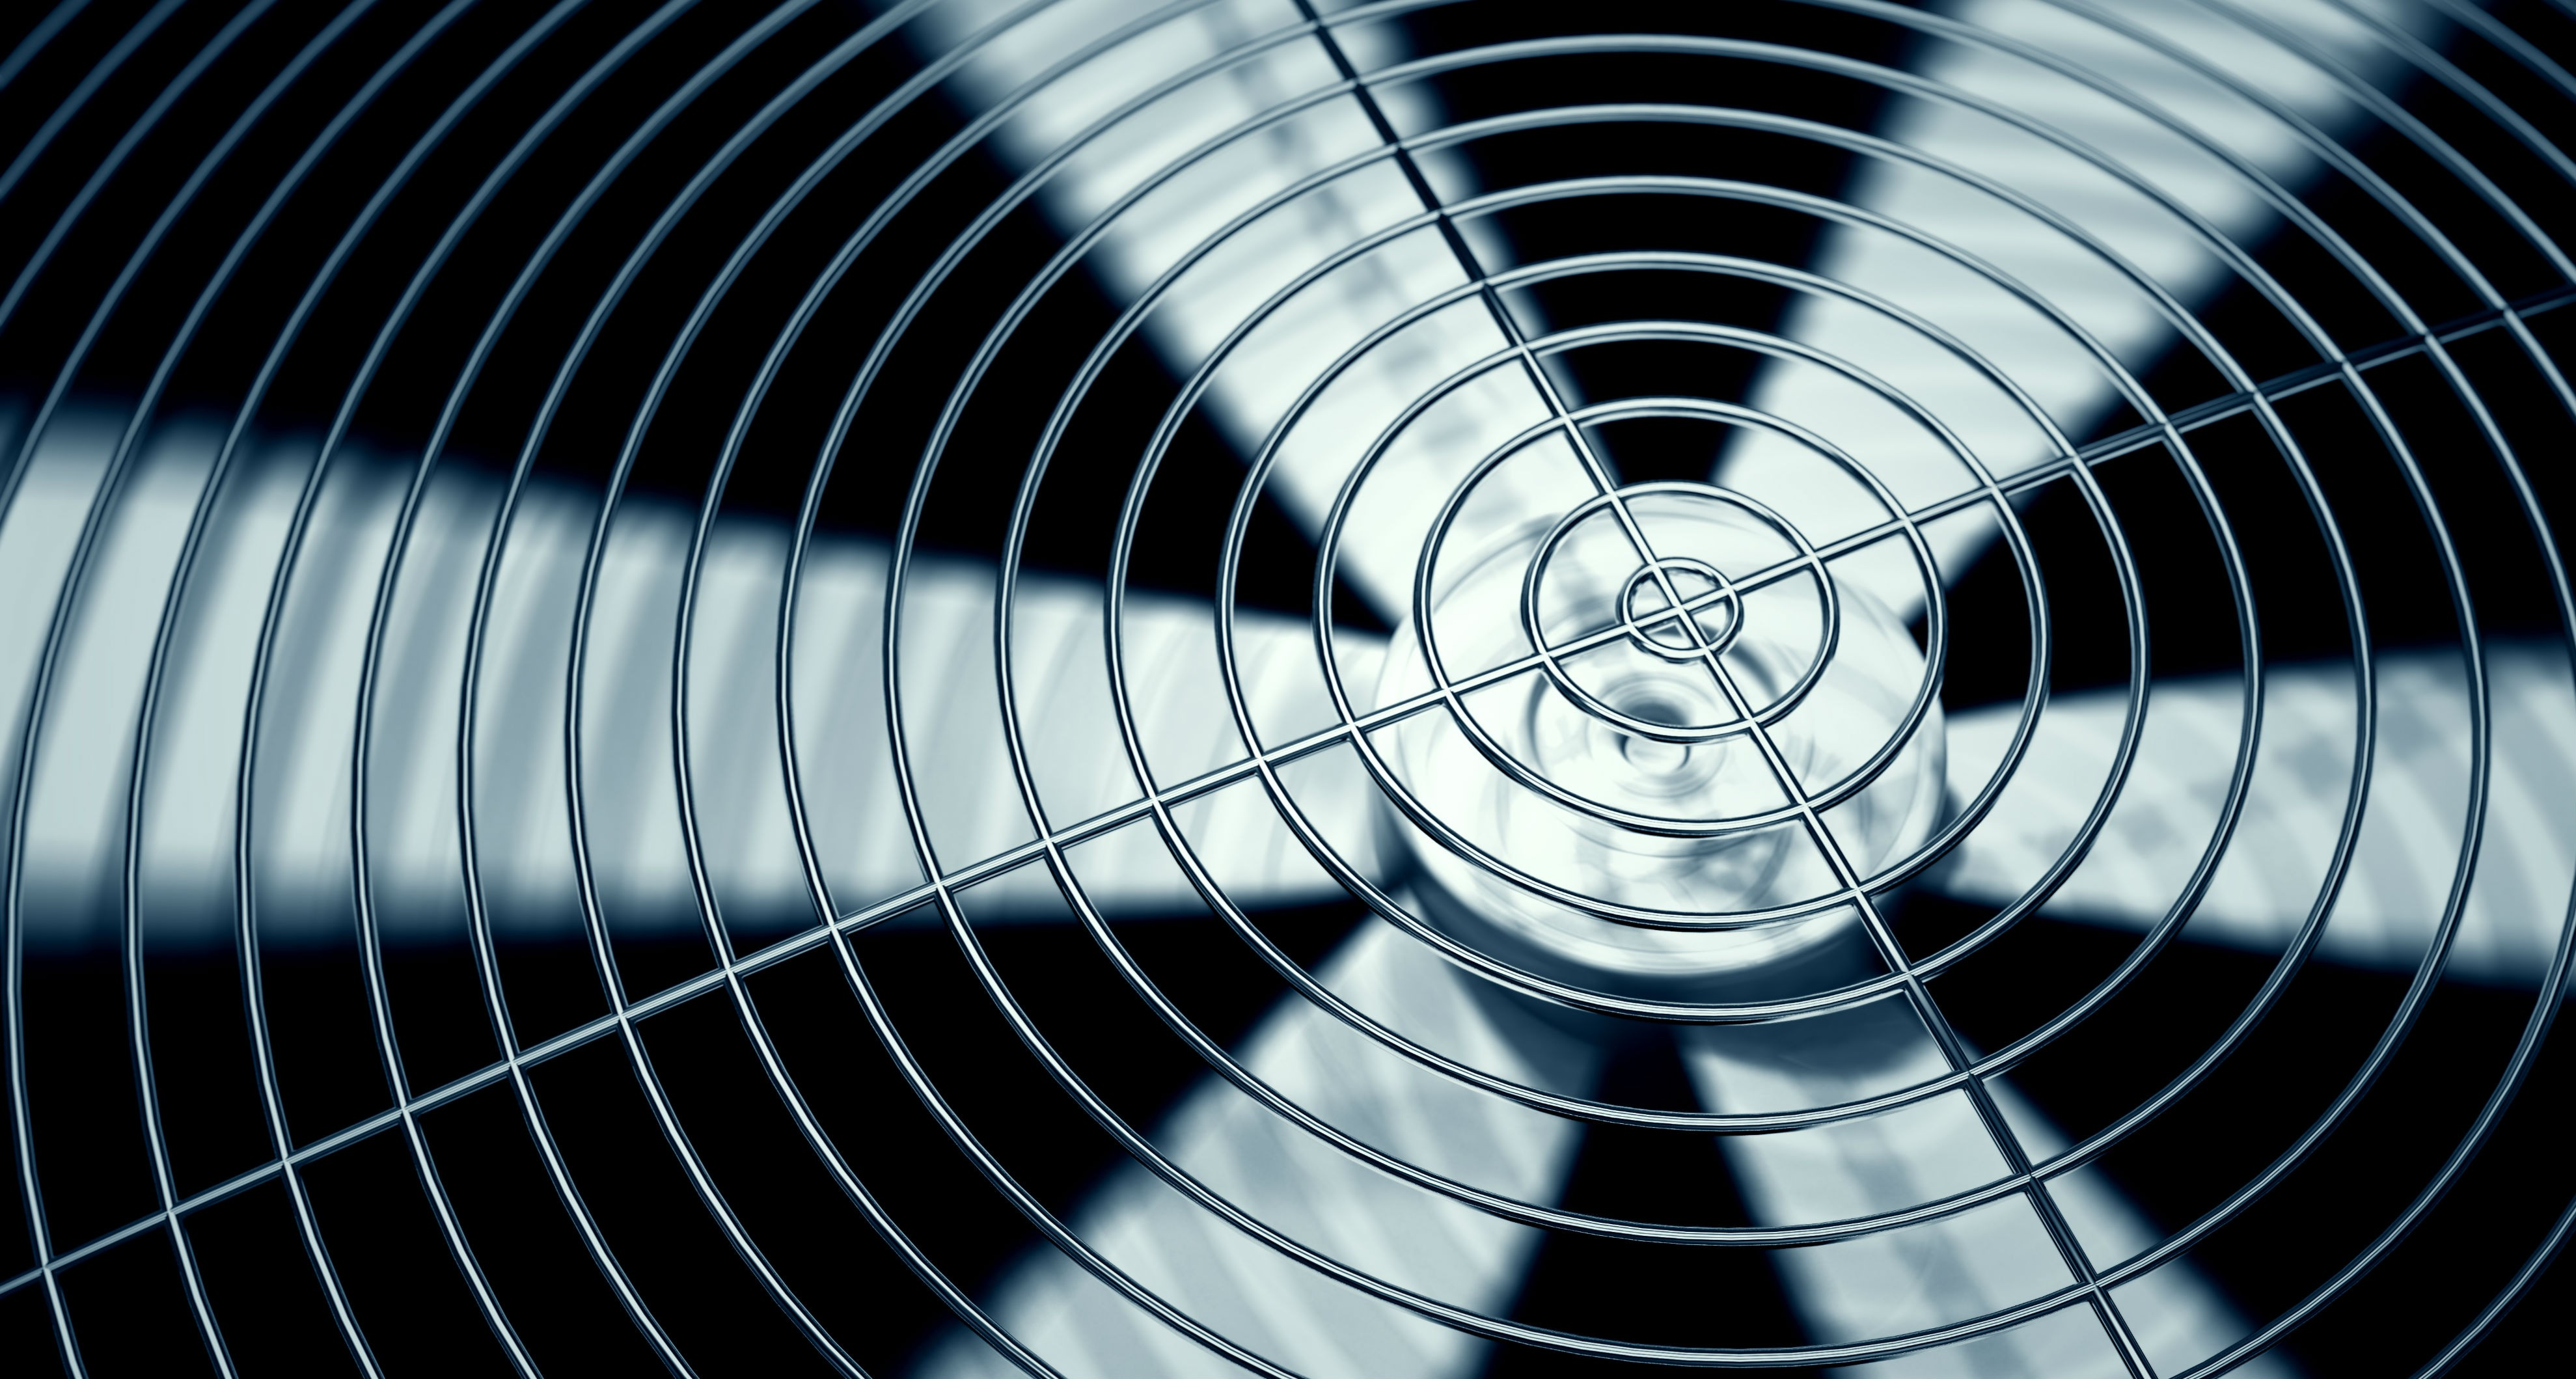 Wall Mounted Fans Tips For Selecting The Right Fan Sylvane Commercial Ceiling Wiring